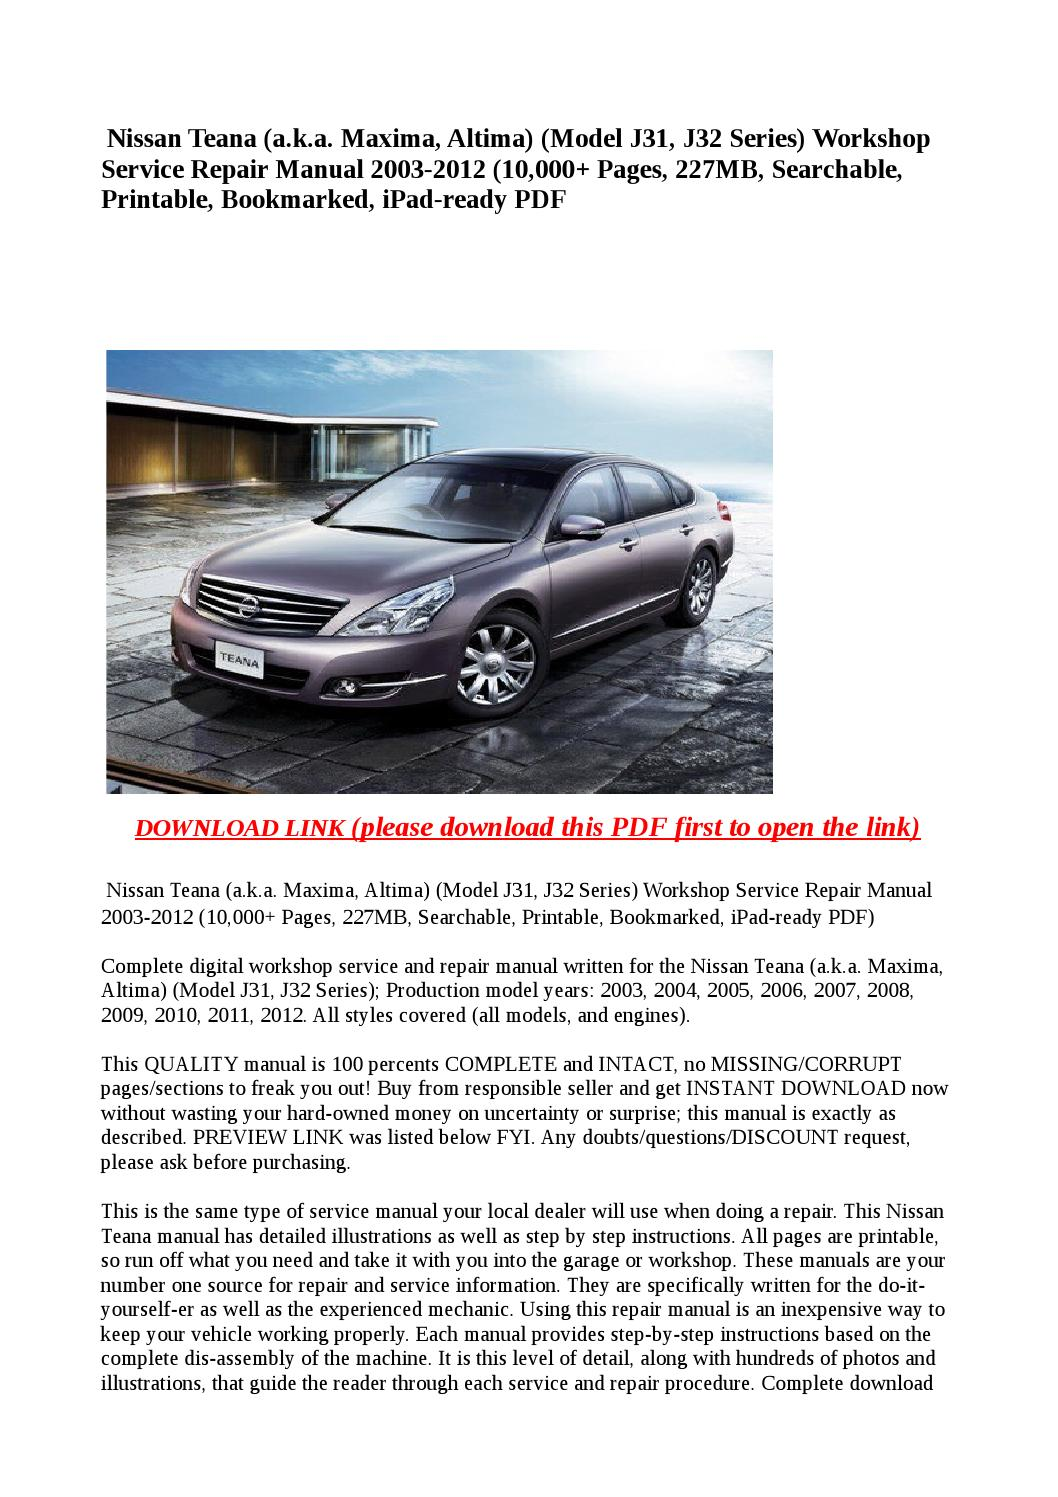 Nissan teana (a k a maxima, altima) (model j31, j32 series) workshop service  repair manual 2003 2012 by buhbu - issuu